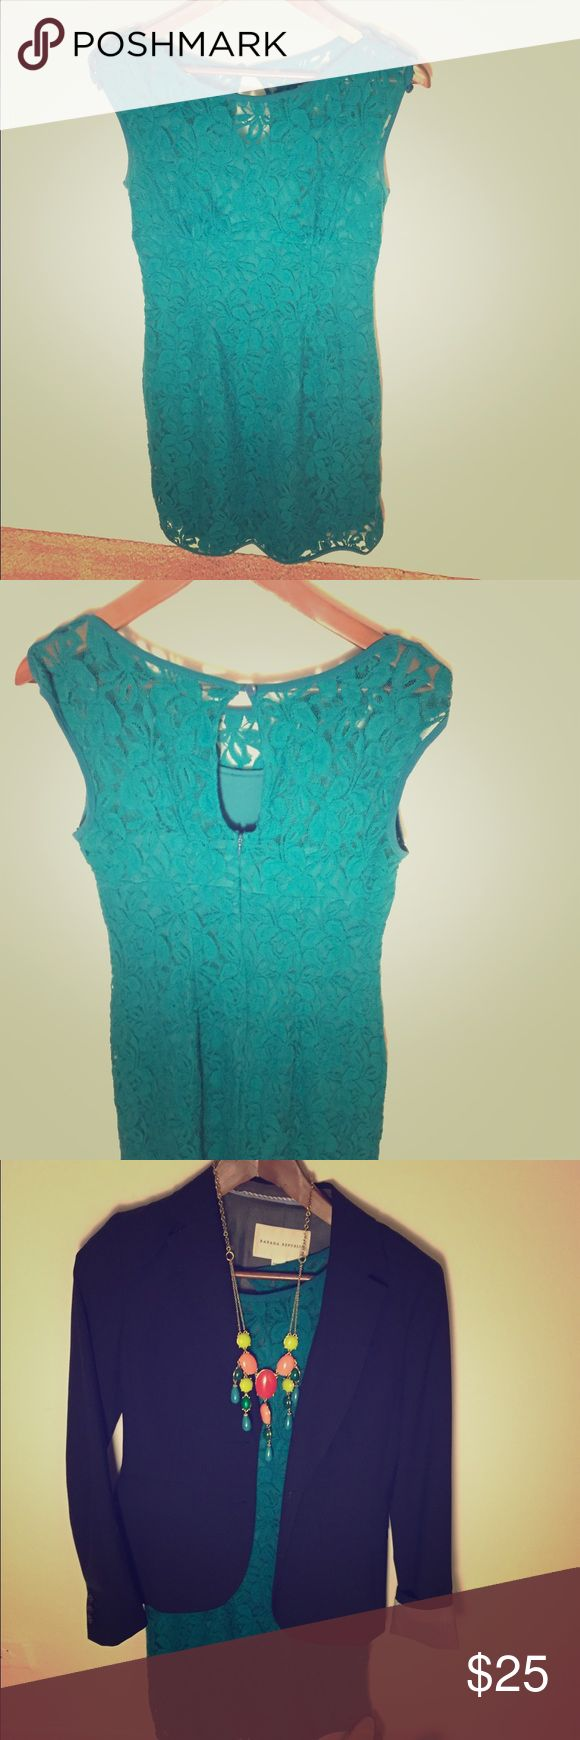 Green lace Cynthia Rowley Dress Lace, cap sleeve green dress by Cynthia Rowley. Above knee length. Spaghetti strap style slip lining. Beautiful vibrant green color perfect for a summer wedding with strappy heels and chandelier earrings or with a blazer and necklace for work. Back zip and button closure. Ships from smoke free, pet free home. Cynthia Rowley Dresses